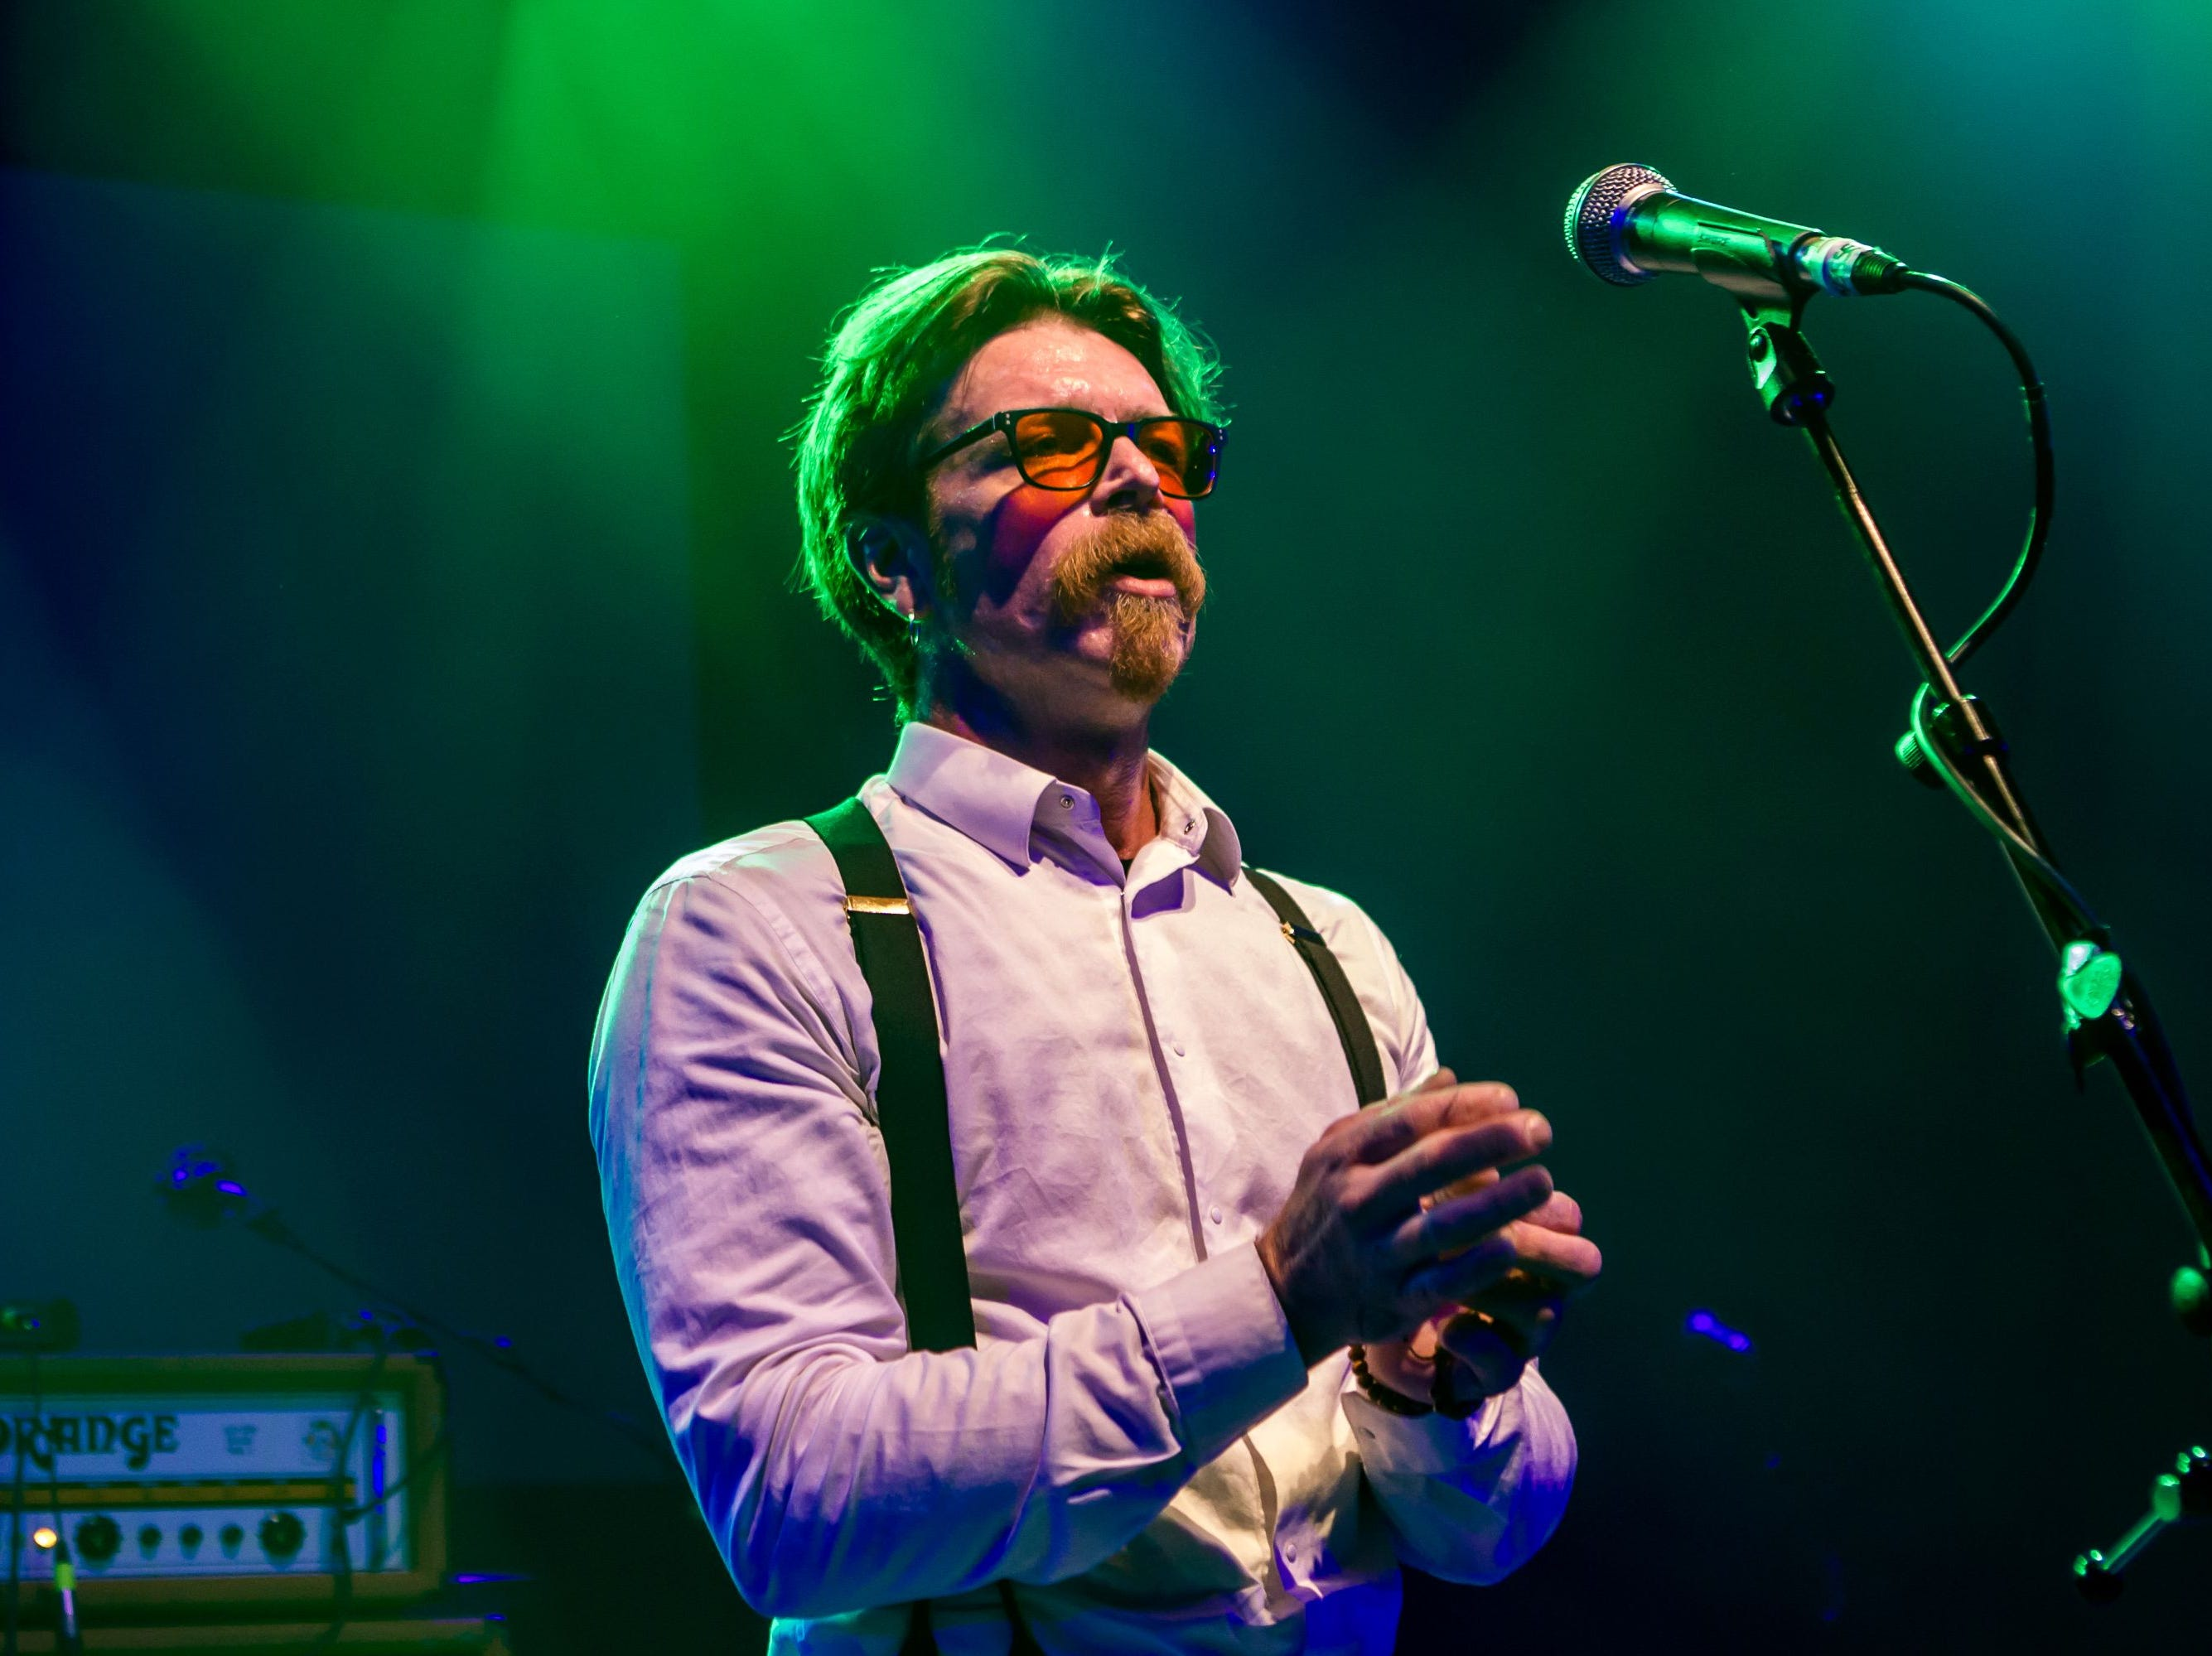 """A handout picture released by the tribute concert 'A Peaceful Noise' on November 16, 2016 shows Eagles of Death Metal frontman Jesse Hughes performing during a tribute concert 'A Peaceful Noise' in London on November 15, 2016 held for Nick Alexander, one of the victims of the November 2015 terror attack on the Bataclan theatre in Paris.   Eagles of Death Metal frontman Jesse Hughes on November 15 made a surprise performance at a London tribute concert to his """"dear friend"""" Nick Alexander, the roadie killed in last year's Paris attacks. / AFP PHOTO / A PEACEFUL NOISE TRIBUTE CONCERT AND AFP PHOTO / Victor Frankowski / RESTRICTED TO EDITORIAL USE - MANDATORY CREDIT  """" AFP PHOTO / A PEACEFUL NOISE / VICTOR FRANKOWSKI """"  -  NO MARKETING NO ADVERTISING CAMPAIGNS   -   DISTRIBUTED AS A SERVICE TO CLIENTS VICTOR FRANKOWSKI/AFP/Getty Images ORIG FILE ID: AFP_I5323"""